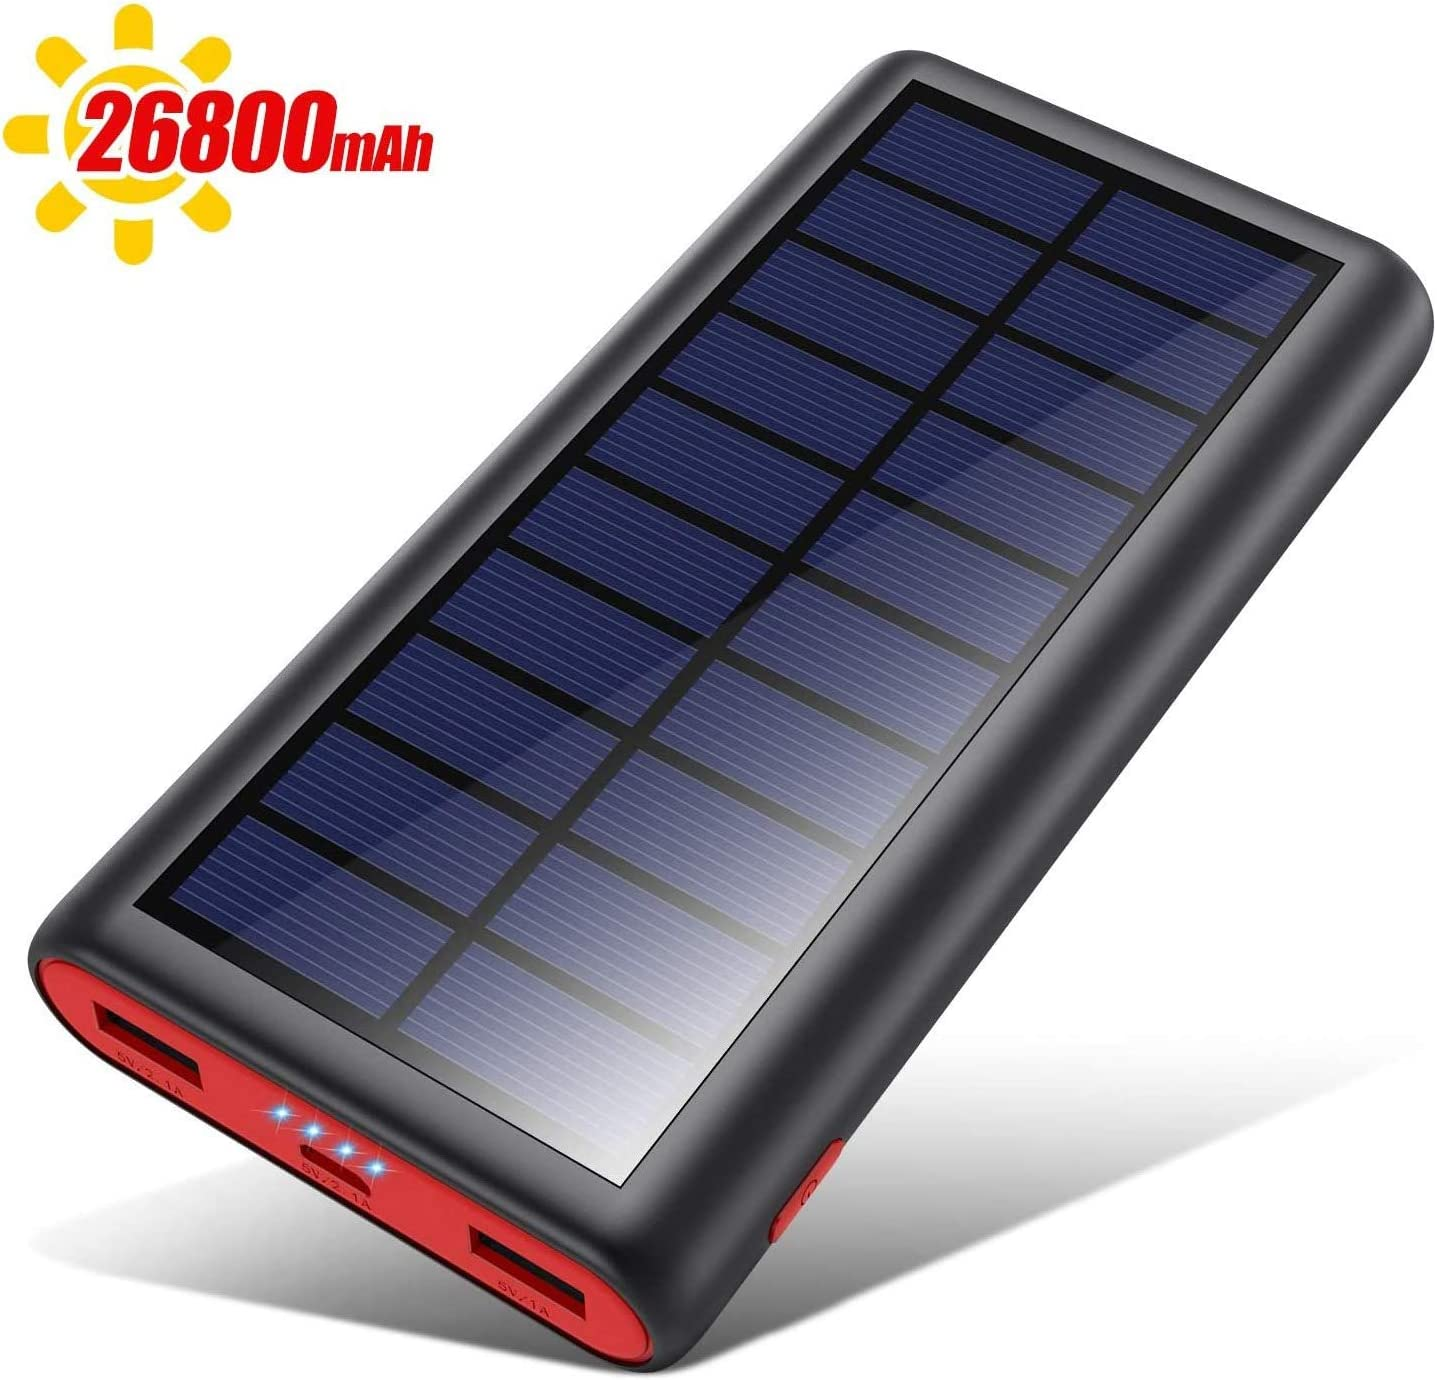 Solar Charger 26800mAh,Kilponen Outdoor Power Bank,Camping High Capacity External Backup Battery Pack with 4 LED Lights,Dual USB Ports Charging for Cellphones Tablets,iPad,GoPro Camera,GPS and More